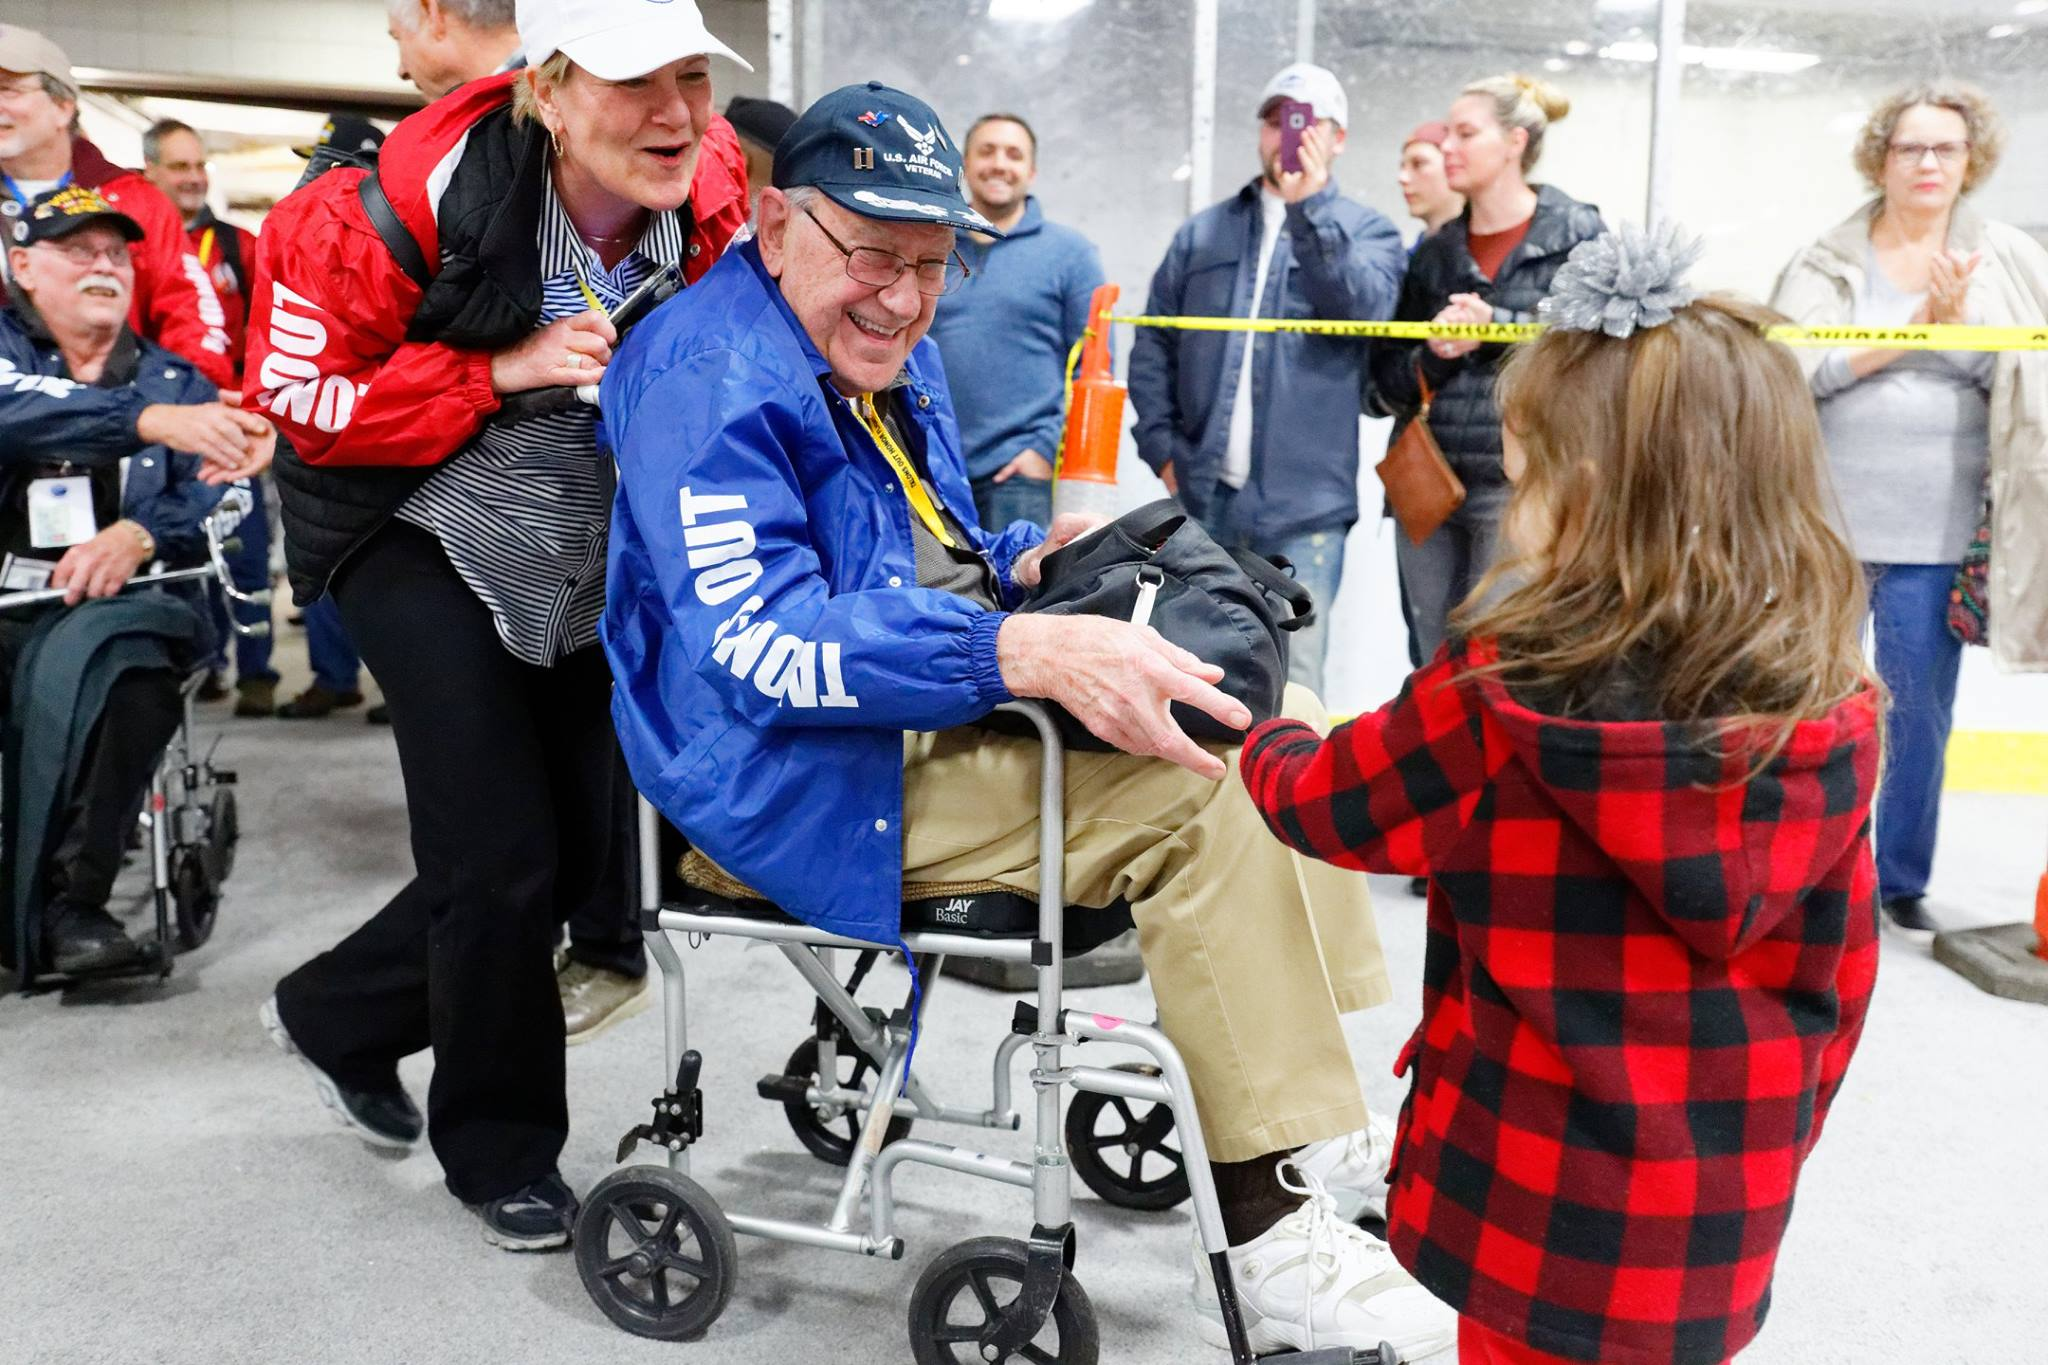 A young girl welcomes home an Honor Flight veteran